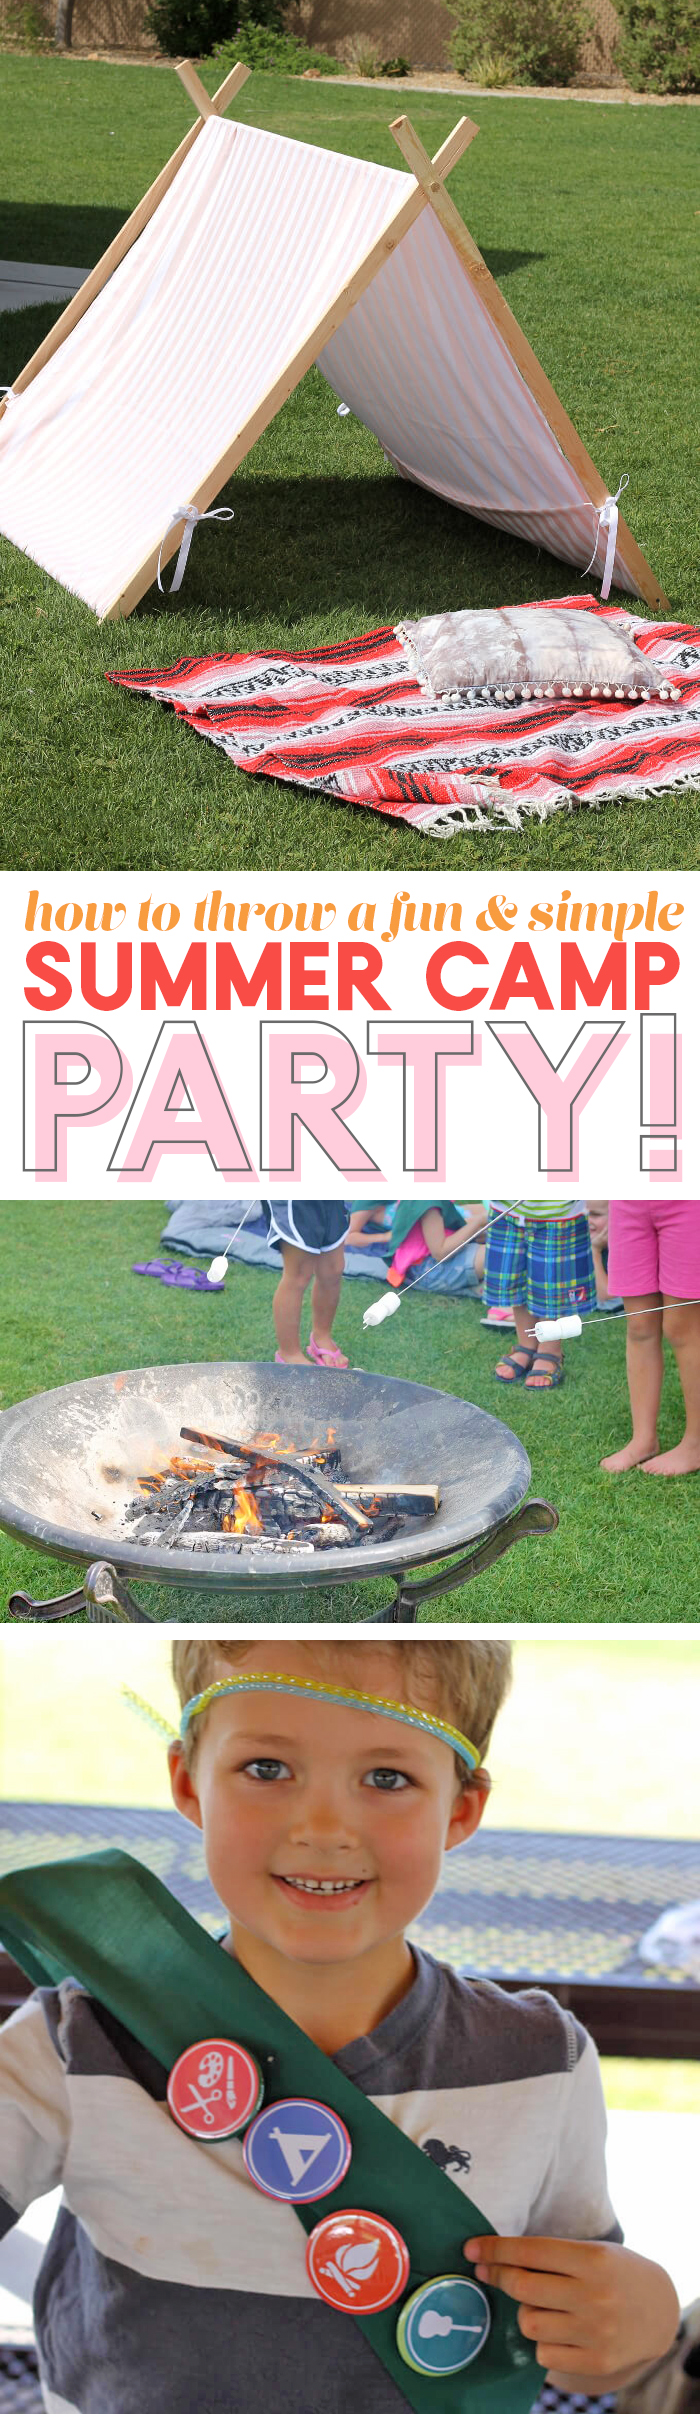 how to throw a fun and simple summer camp party